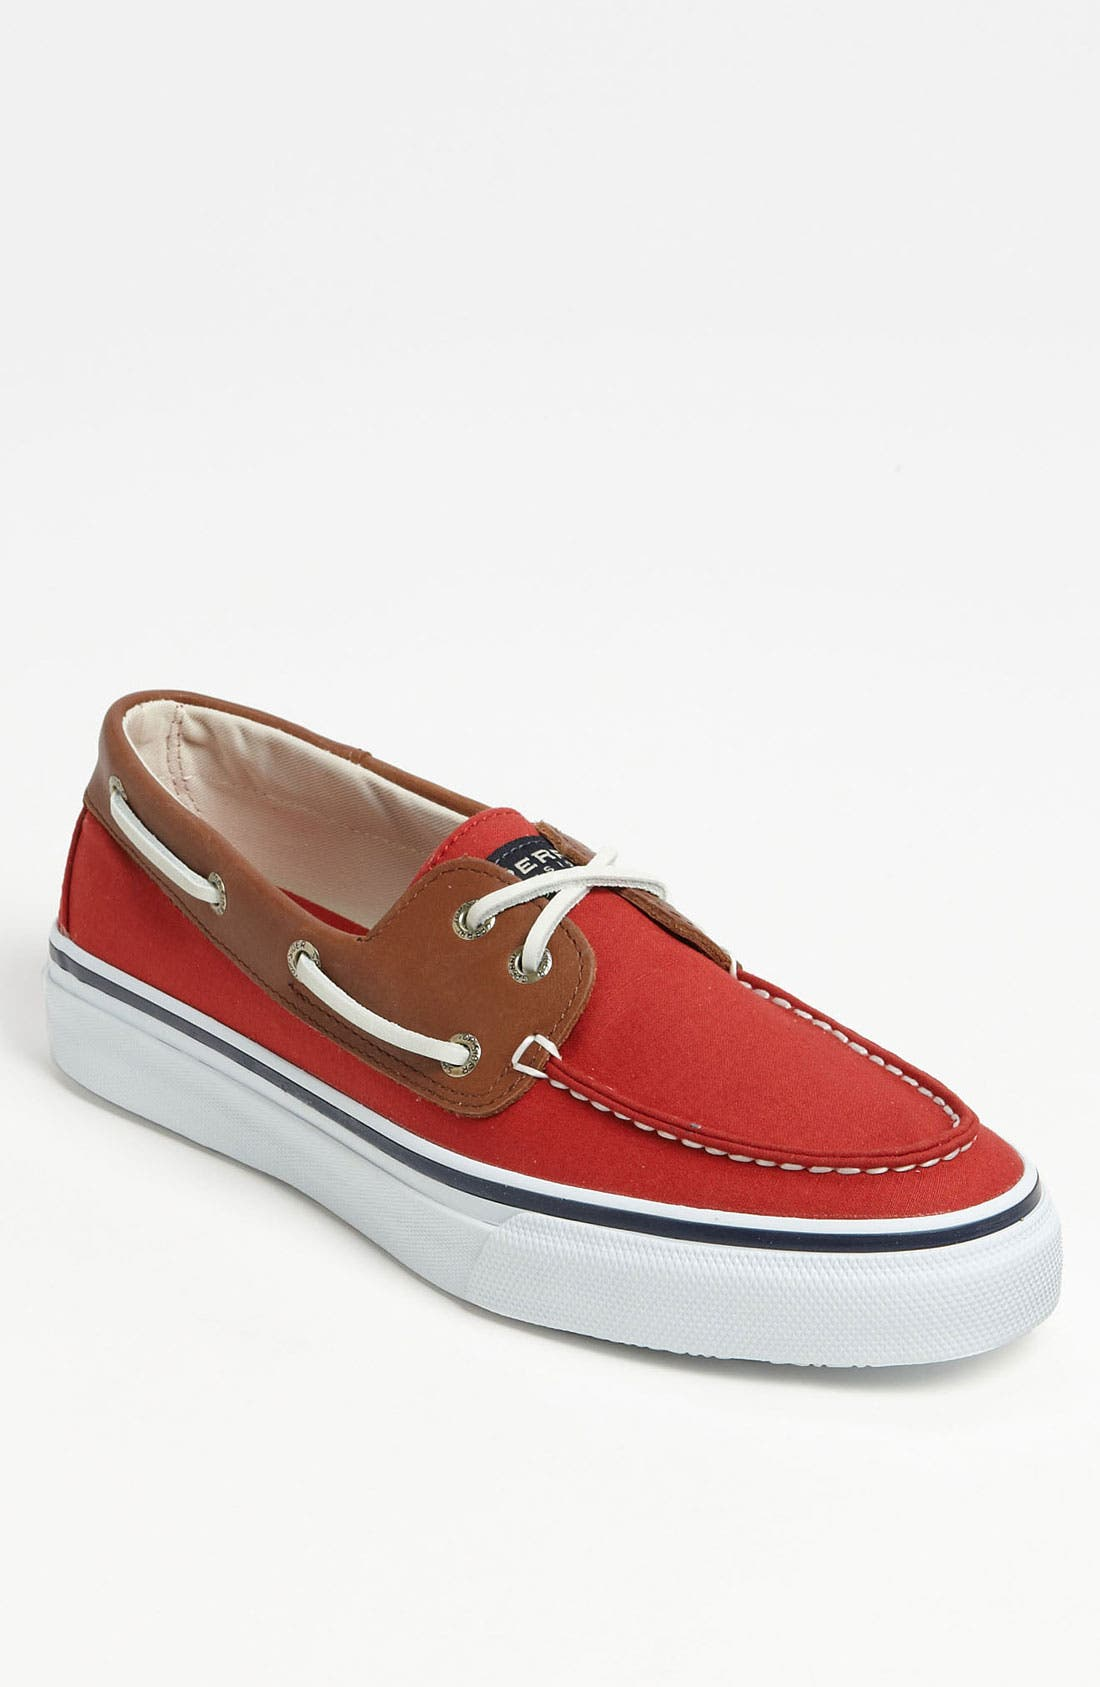 Main Image - Sperry Top-Sider® 'Bahama' Boat Shoe